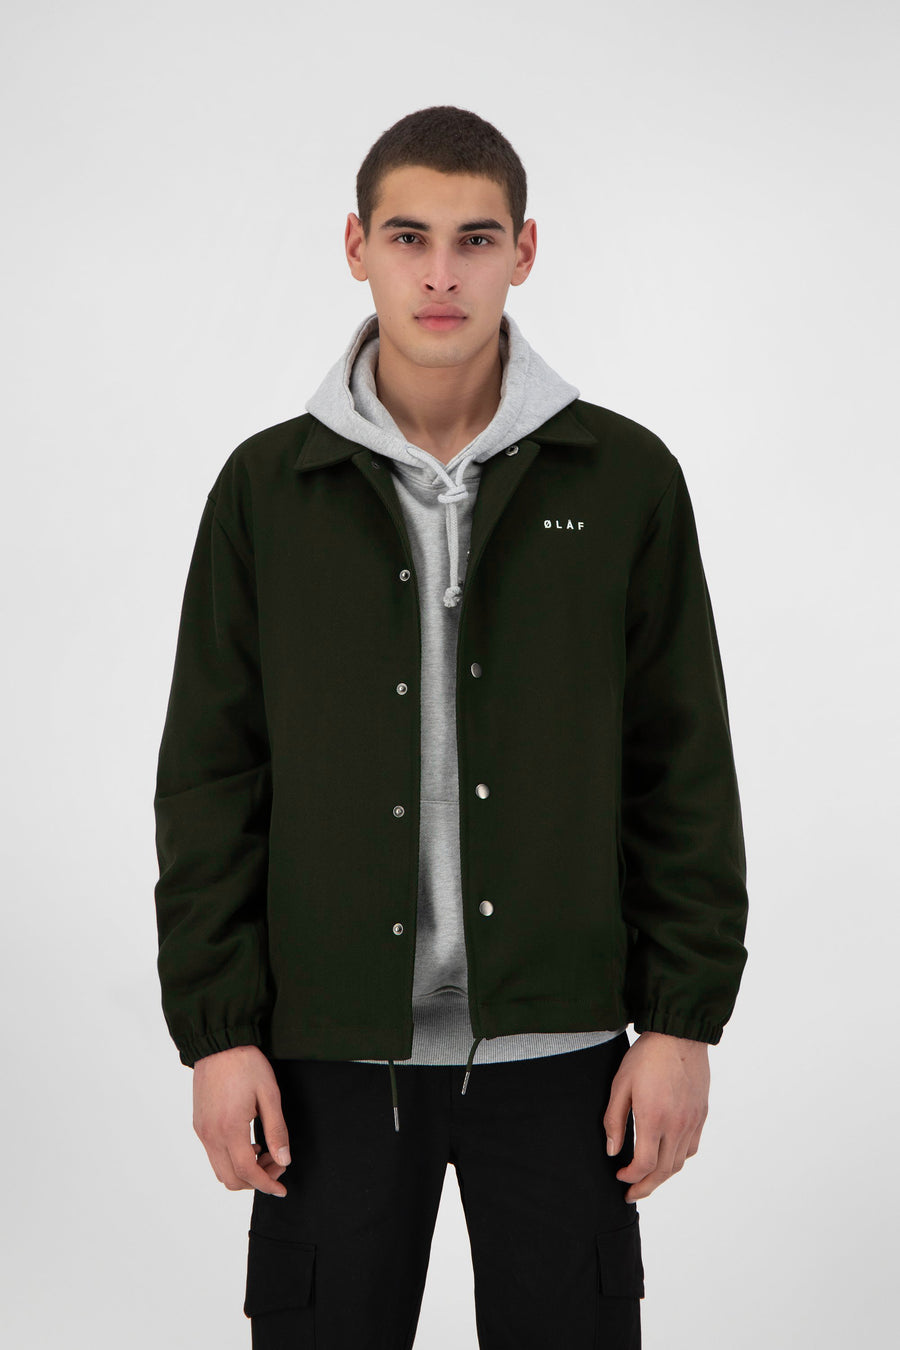 ØLÅF Coach Jacket - Dark Green